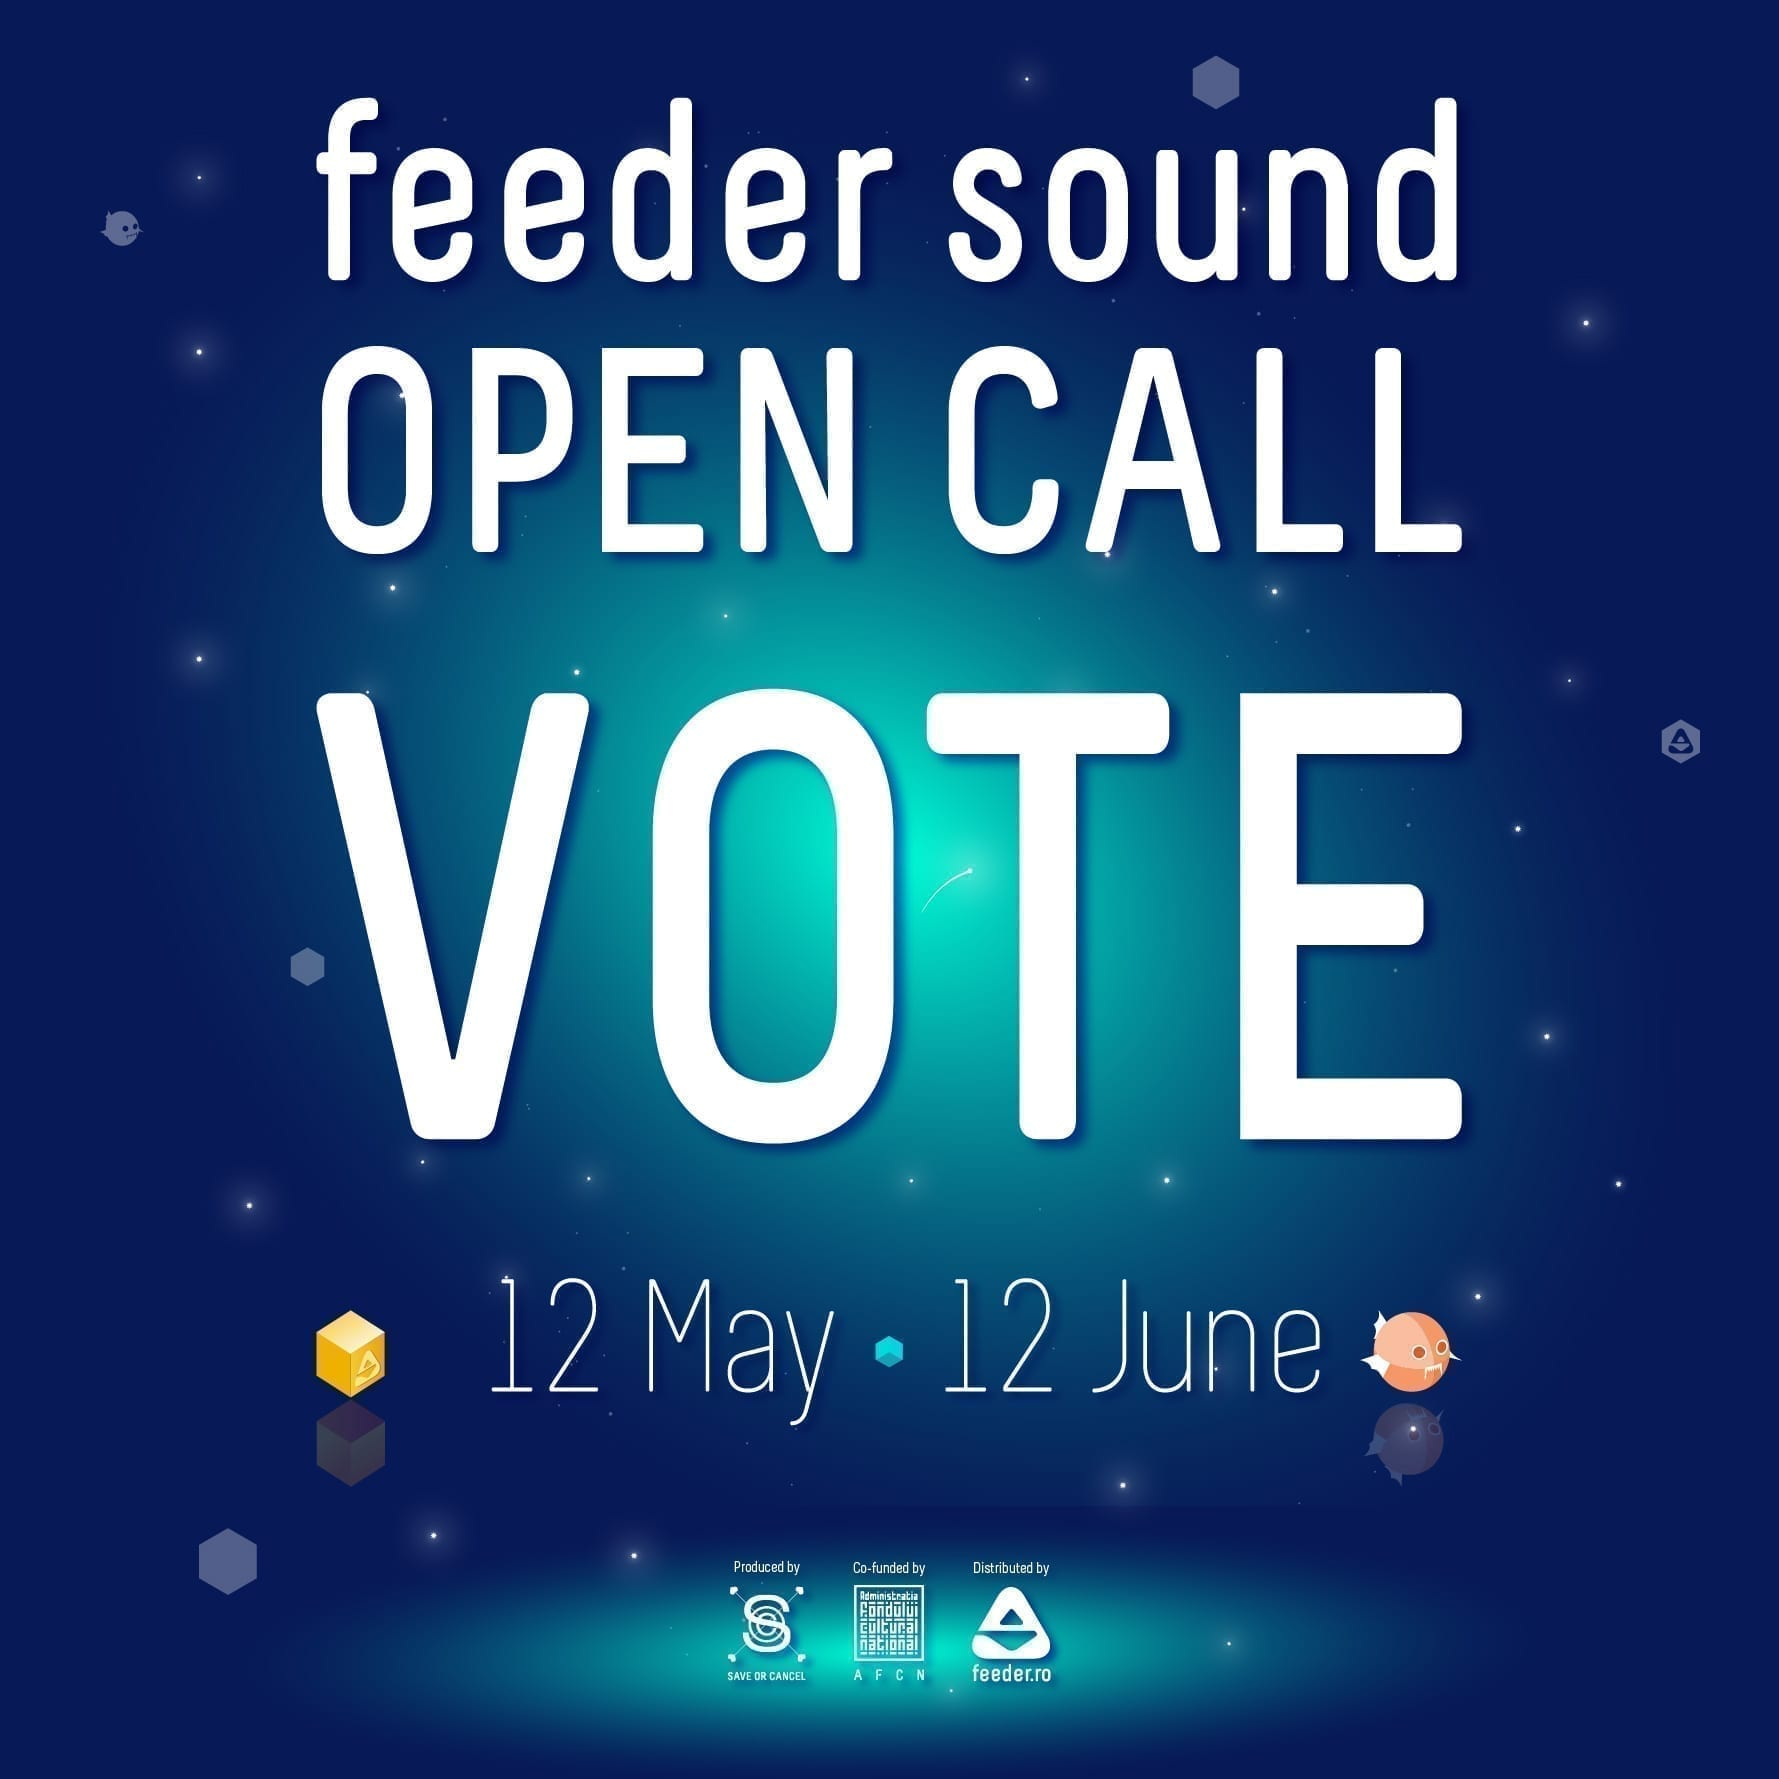 VOTE your favourite sets participating in the feeder sound II OPEN CALL for DJs